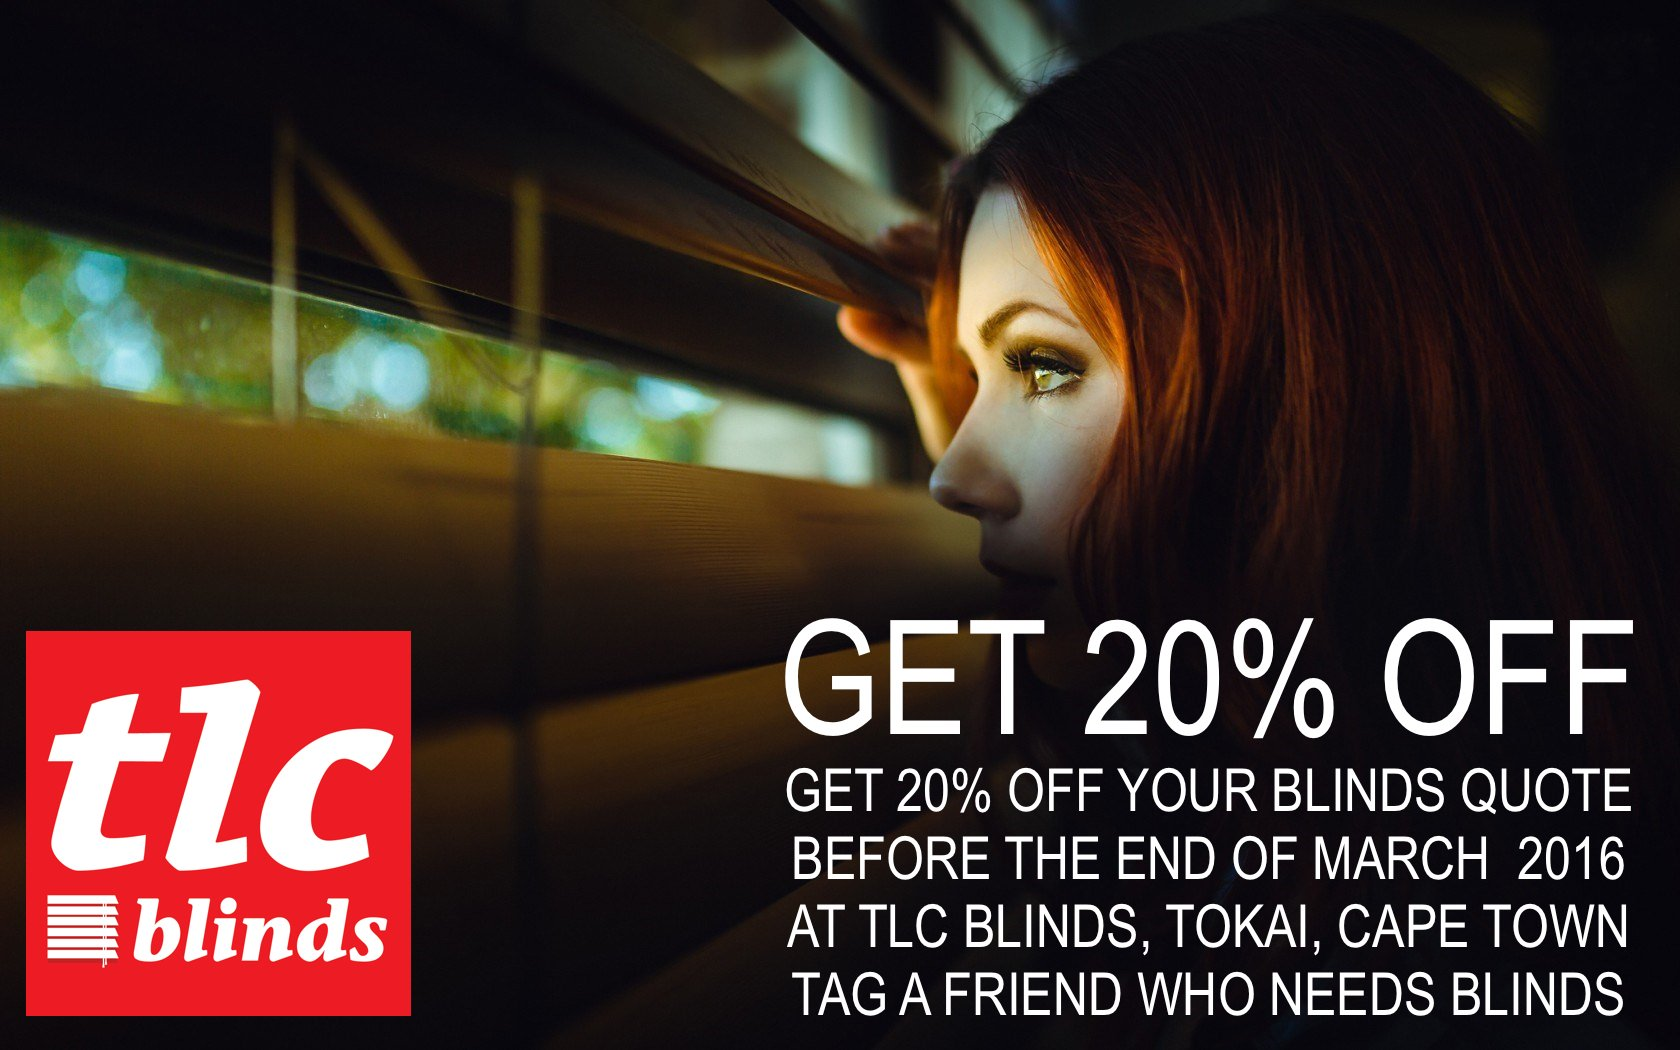 tlc blinds cape town blinds special 20% off March